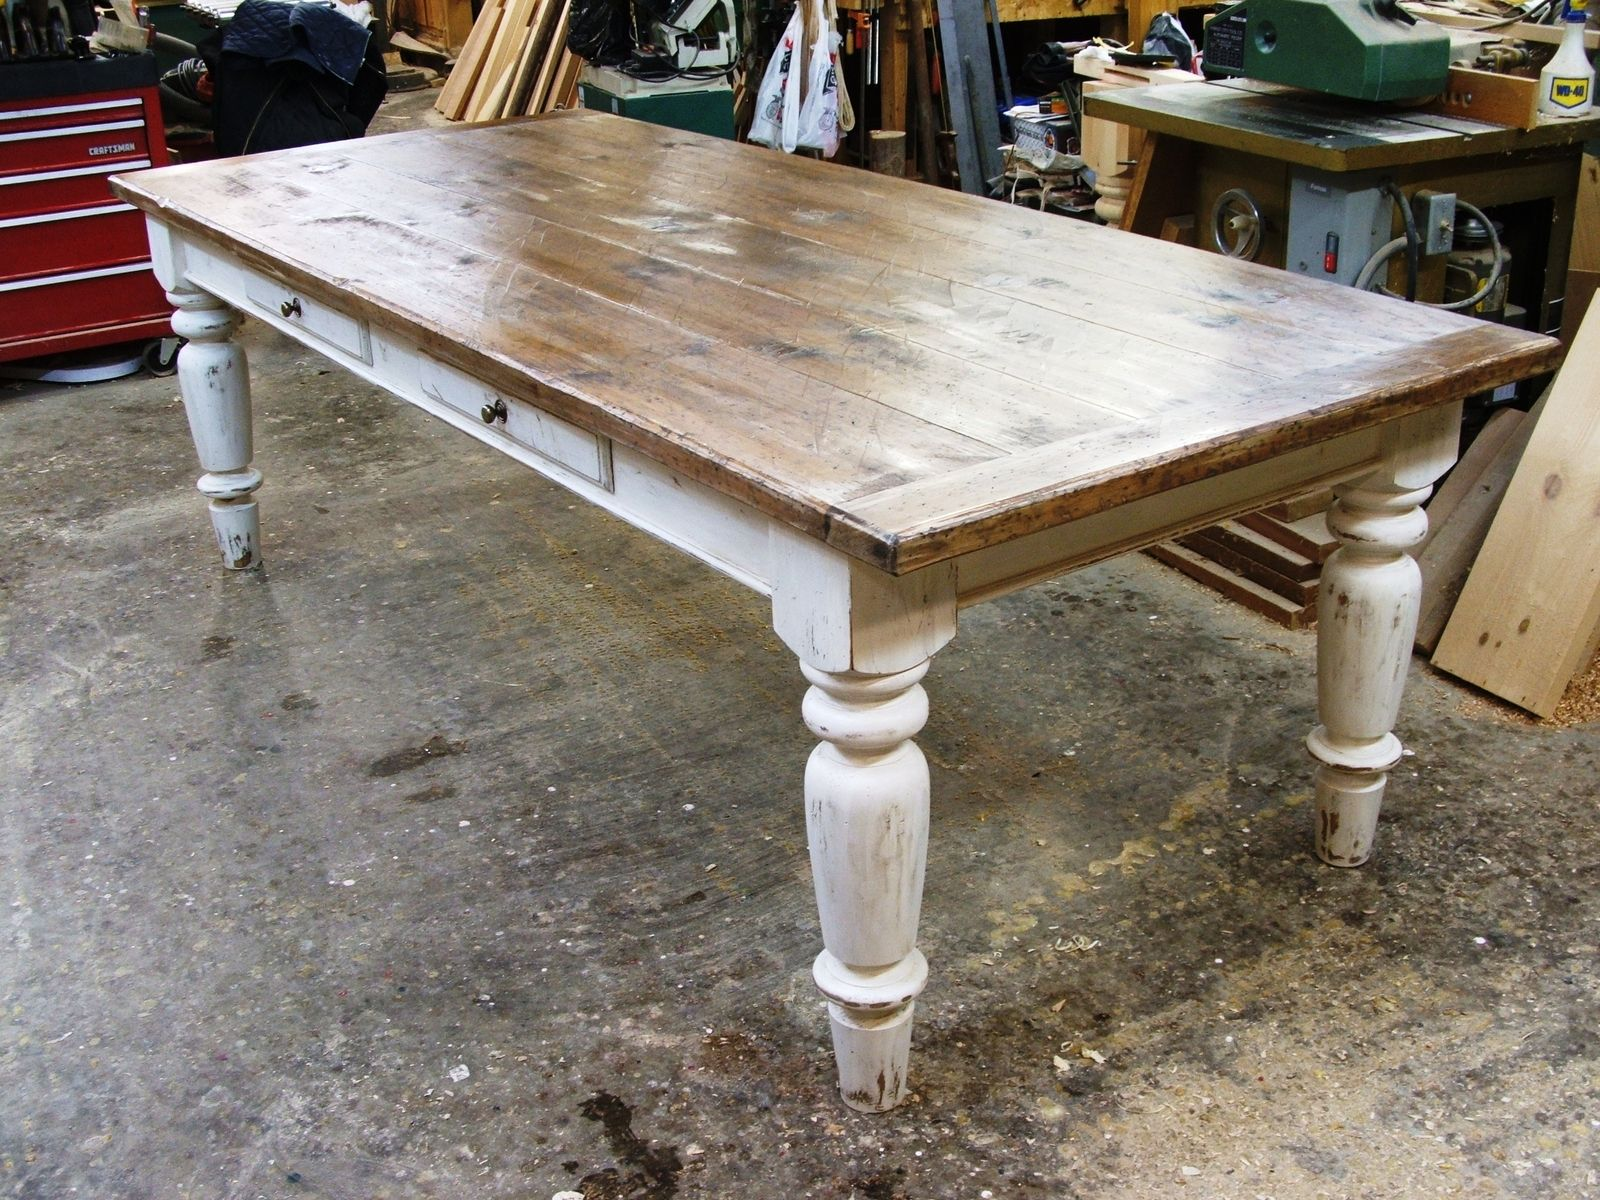 White scrubbed pine farmhouse table, I love the look of a